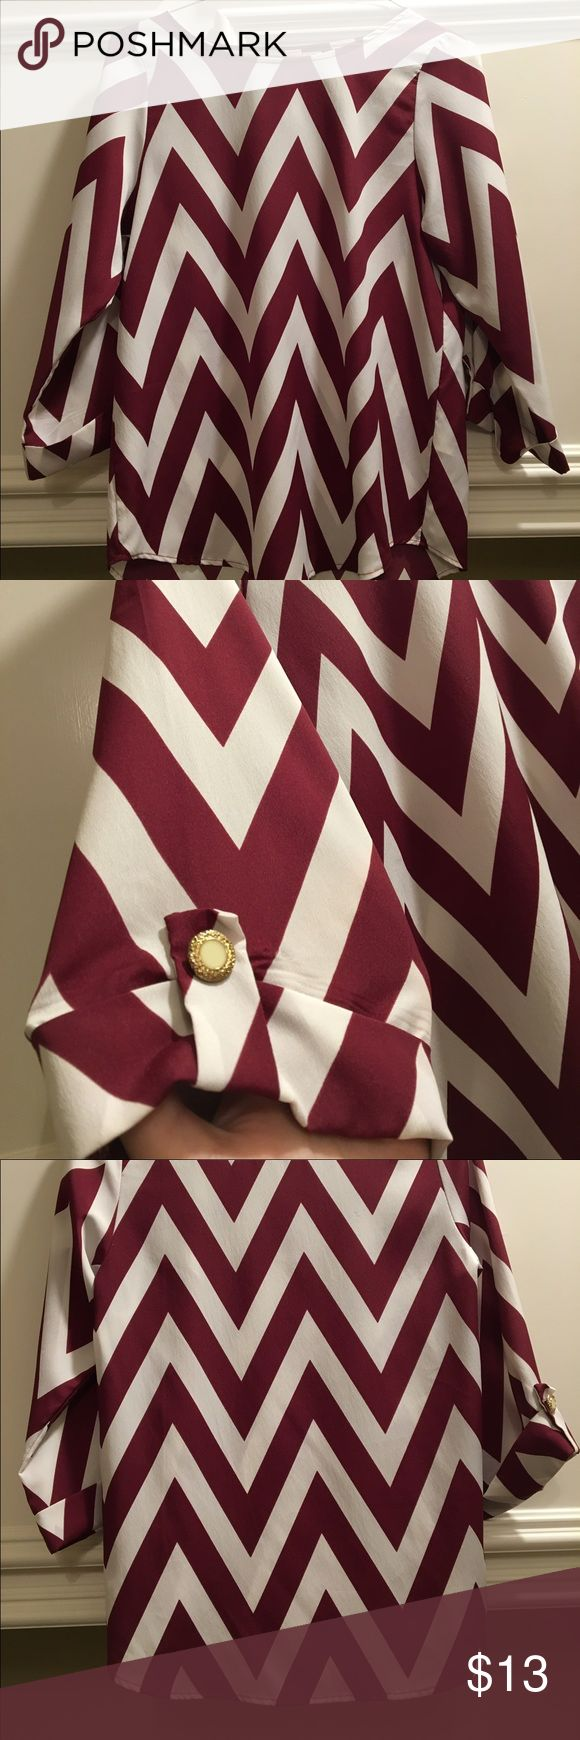 Chevron shirt sleeves go down to elbow, maroon and white, Great condition Tops Blouses